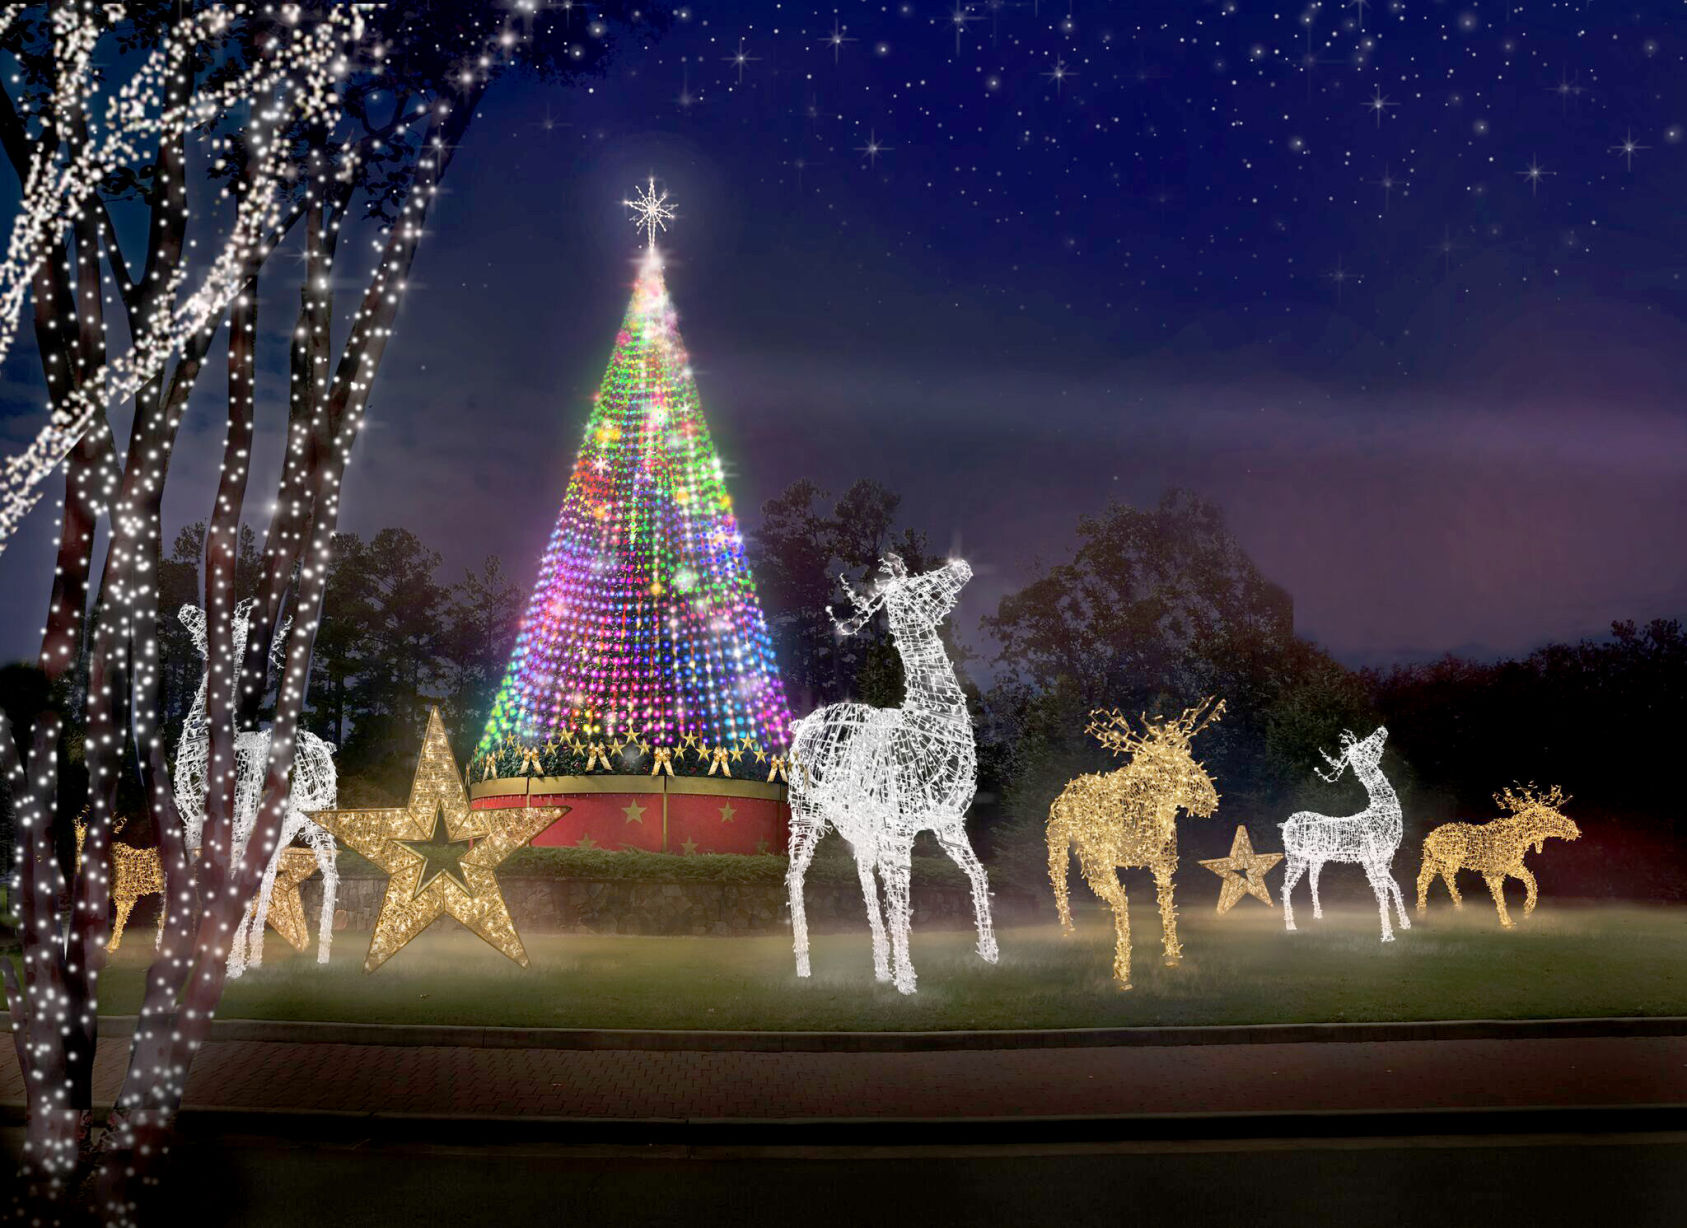 About The Sugar Land Holiday Lights